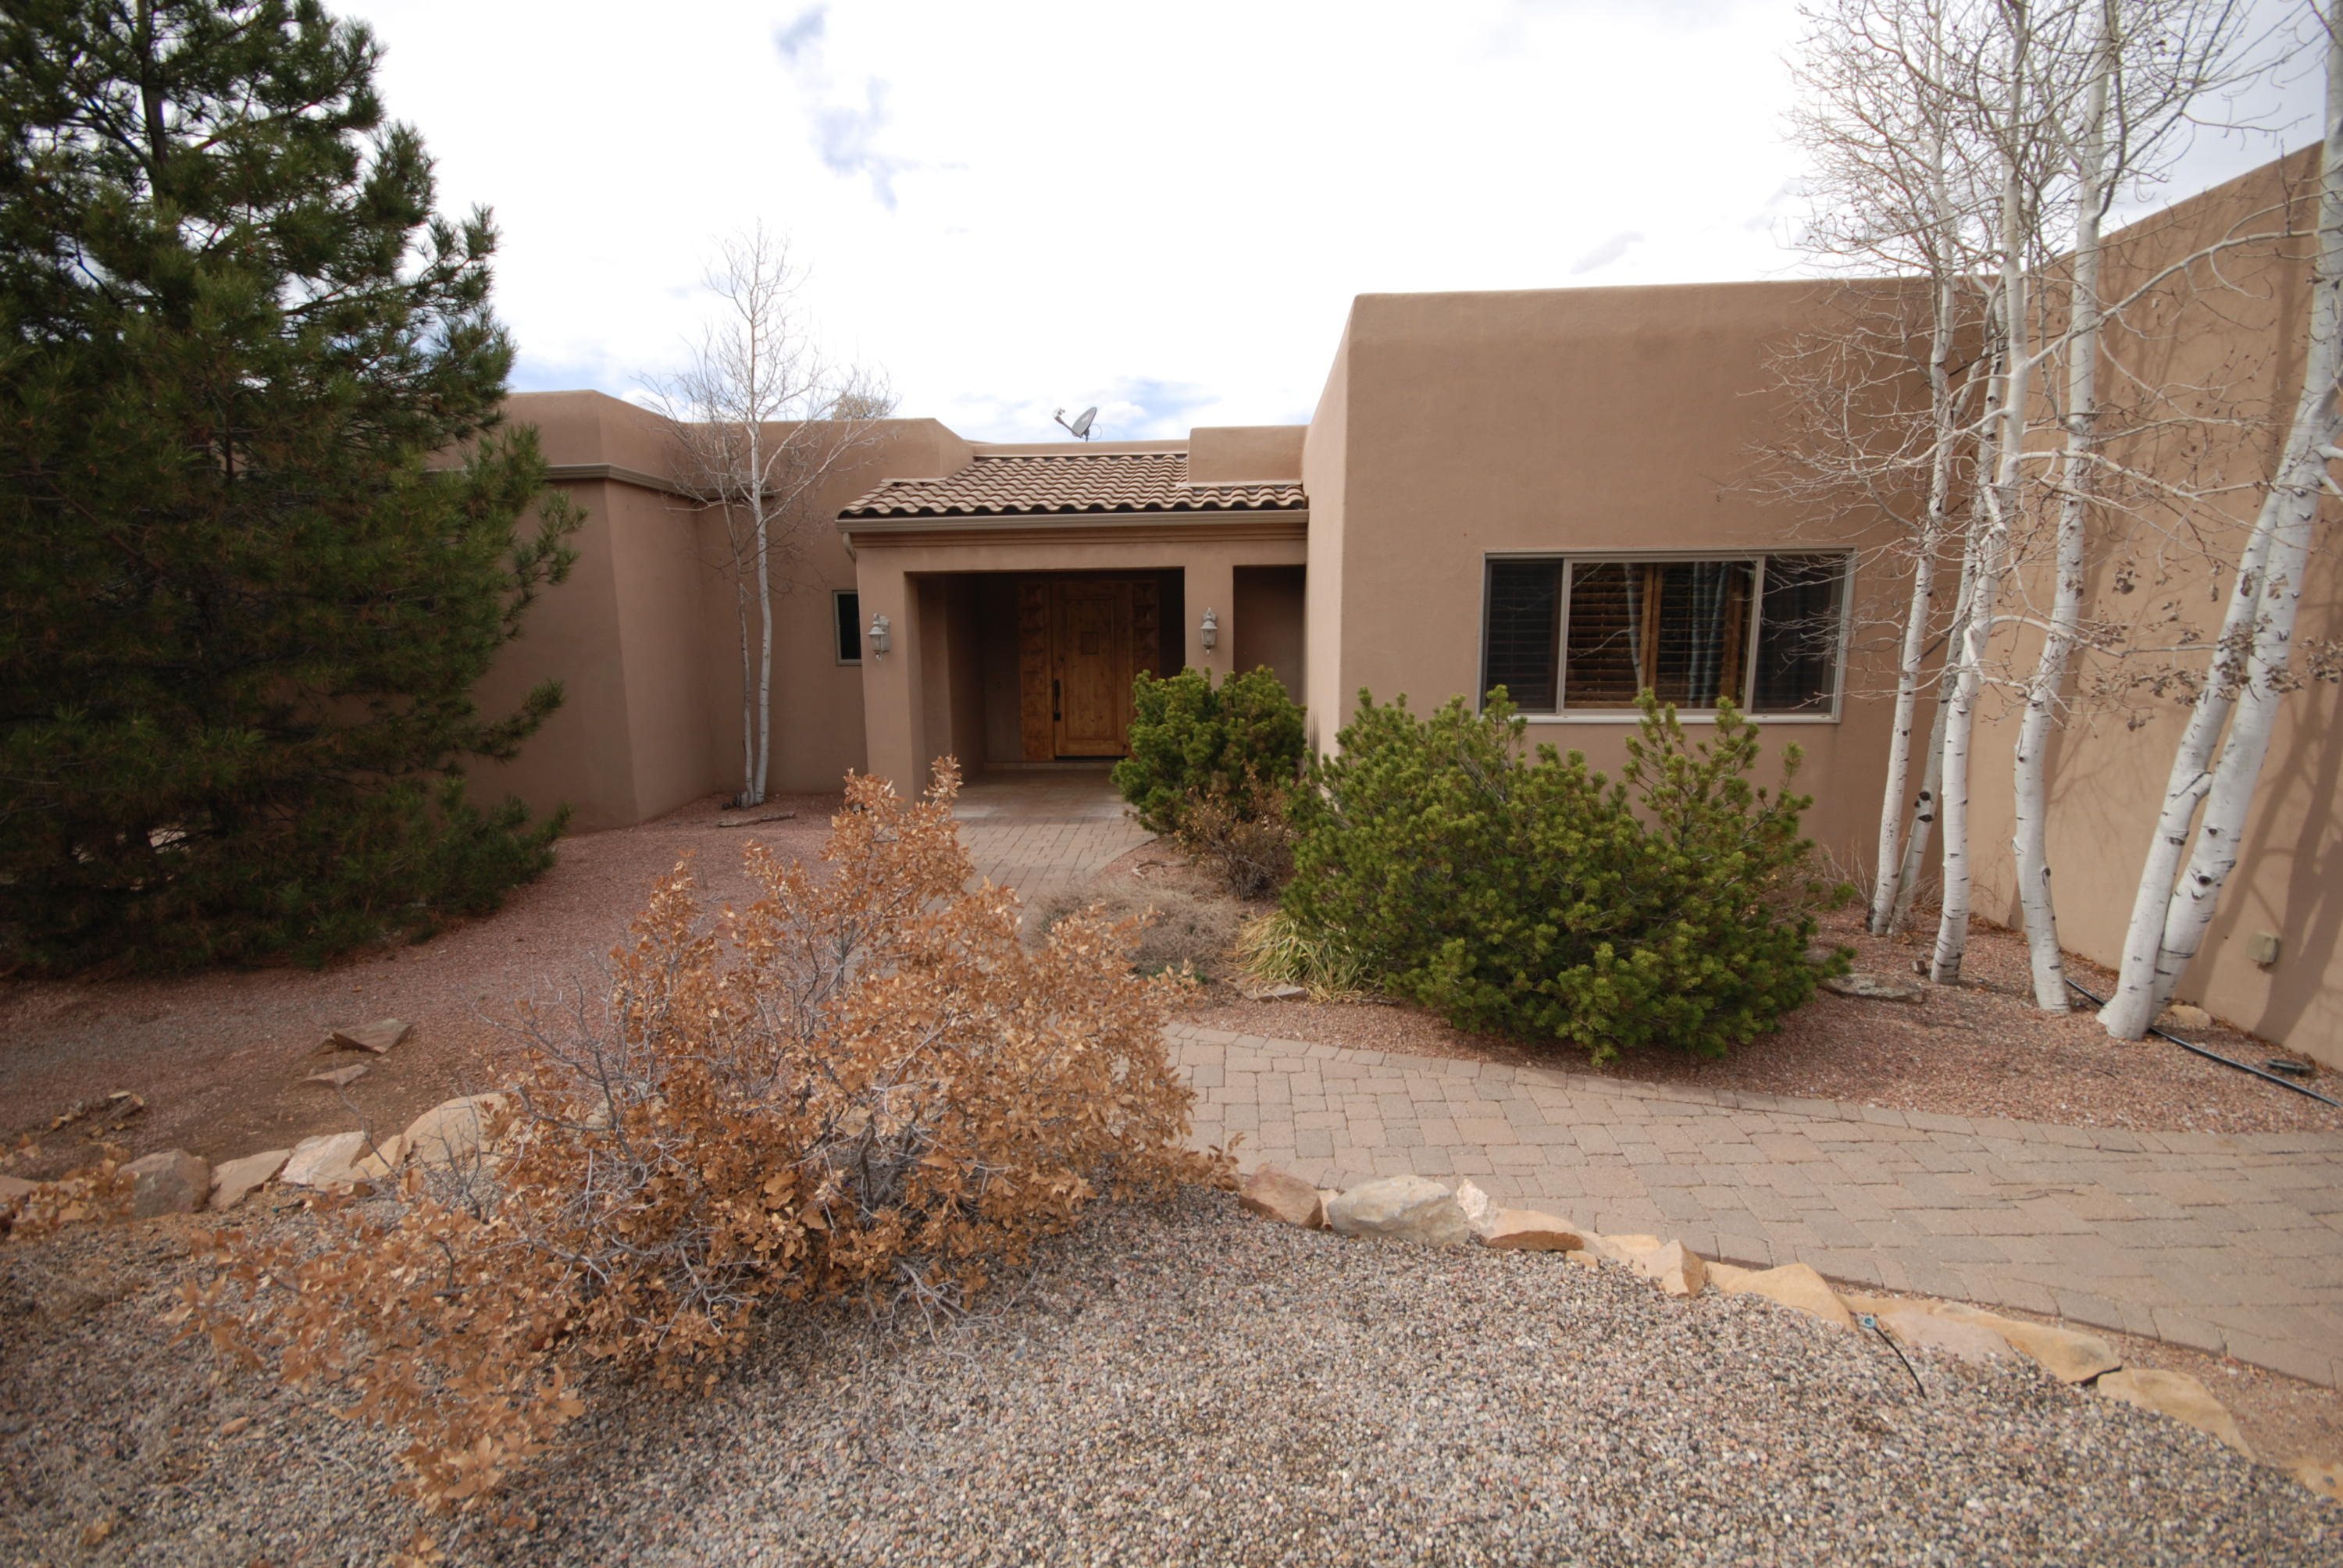 Lovely single story home on a wooded acre.  Exterior has cobble driveway, rock terraced walls and full on views of Sandia Mtns.  Covered entry leads to large great room with high ceilings and tile floors.  Cozy gas fireplace and built in entertainment center.  Formal dining room with wall of glass.  Chef's kitchen  with granite countertops, large island, 5 burner stove, double ovens, pantry, loads of cabinets.  Owner's suite has separate study or yoga room, huge walk in closet and a bathroom you could dance in.  Down the hall is a guest bedroom and bath.  On the other side of living is the third bedroom or study with a wall of glass and built in bookcases.  3/4 bath with etched glass doors.  huge covered patio with built in grill. 3 car finished garage separate workshop.